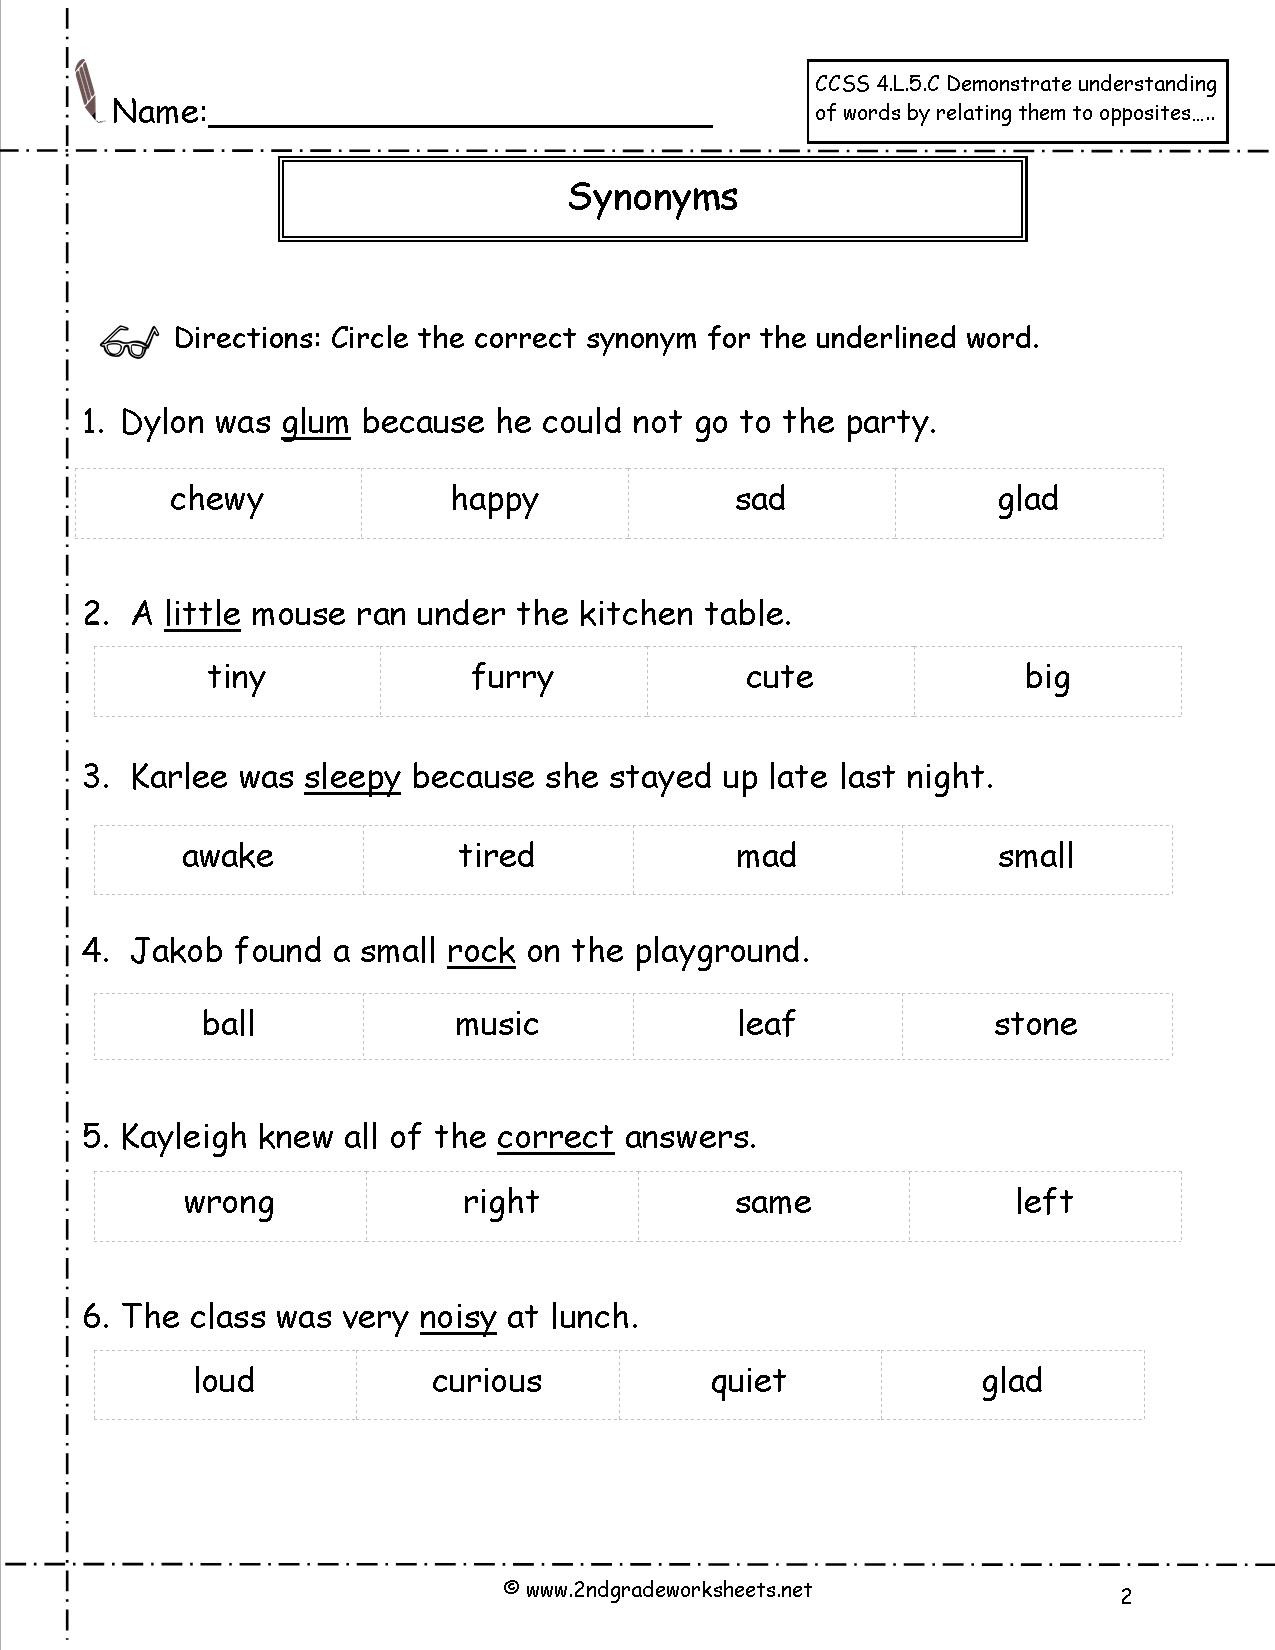 Synonyms And Antonyms Worksheets Antonym For Third Grade